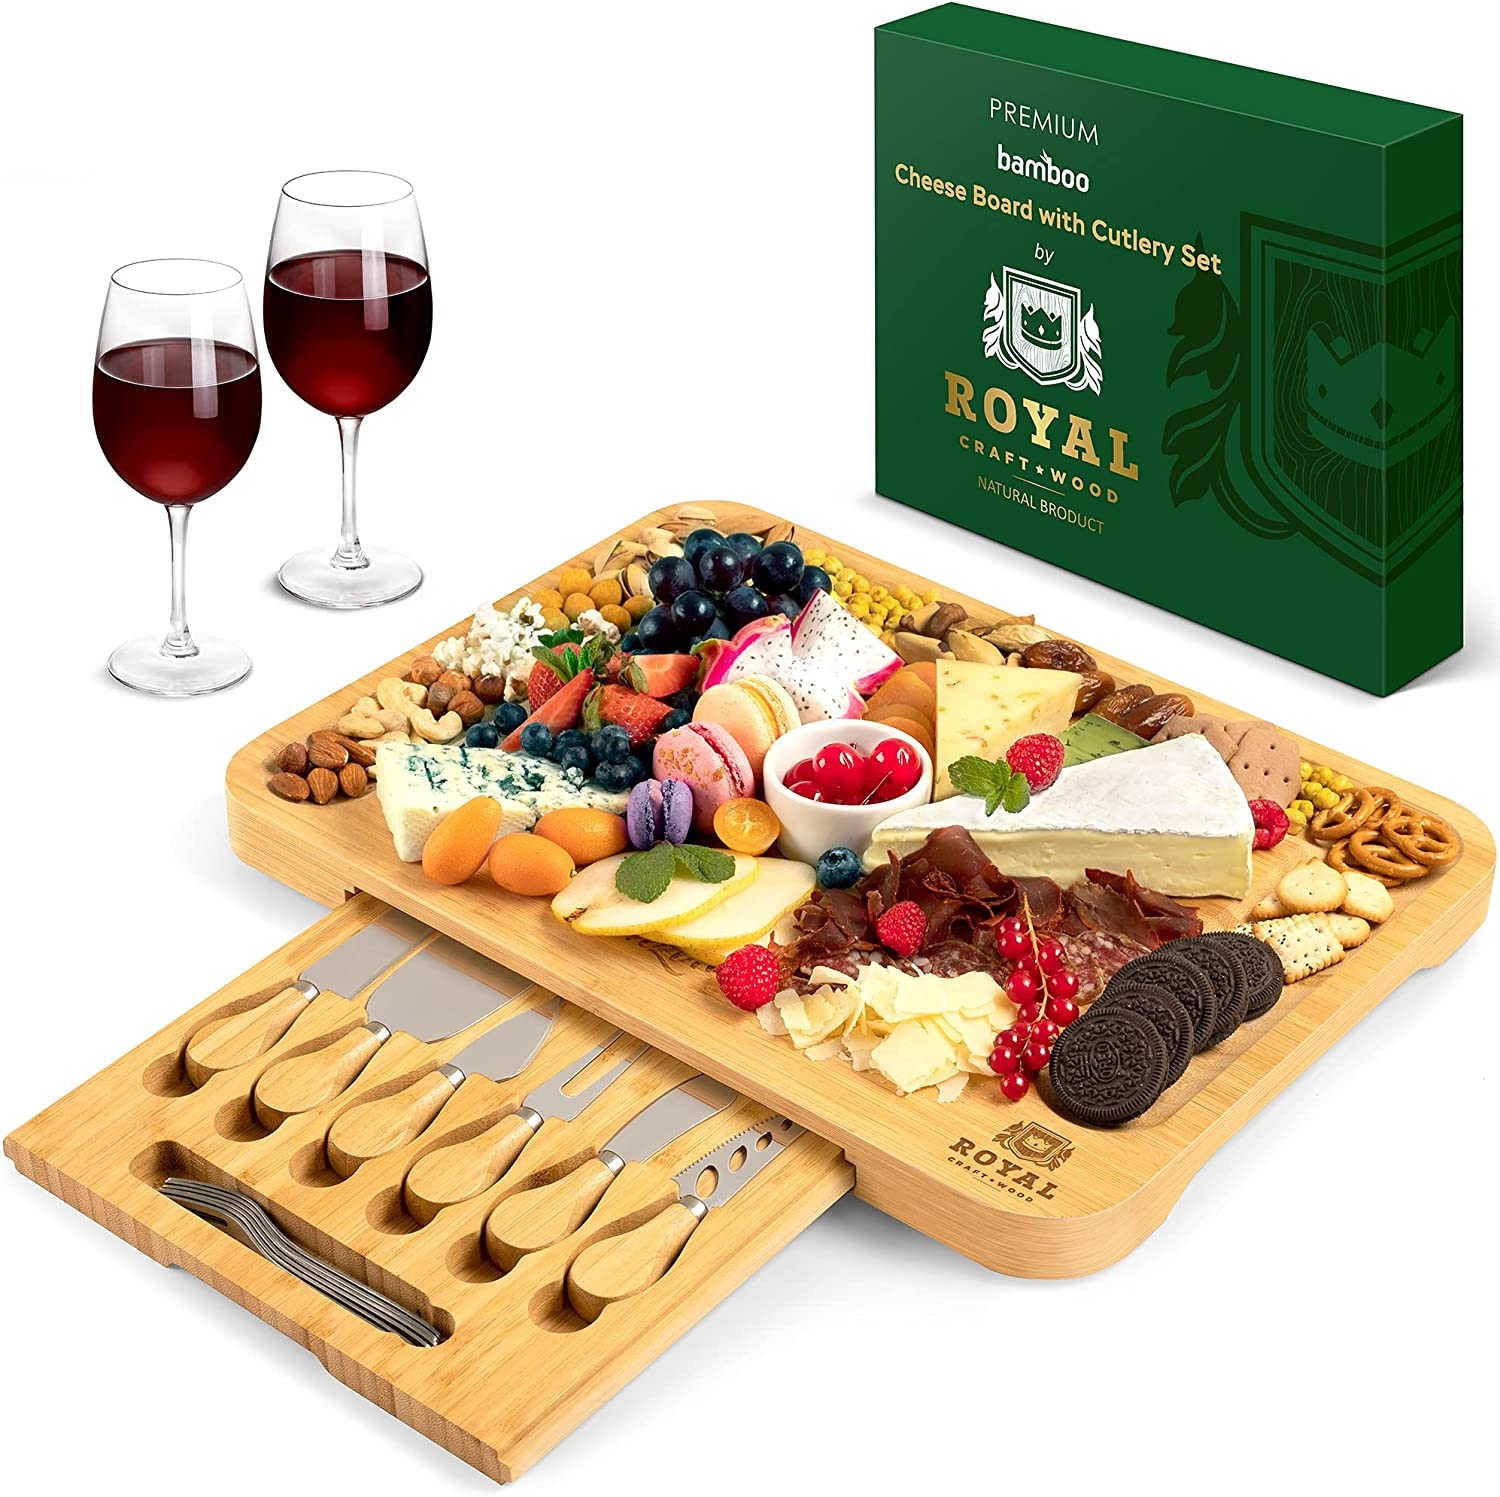 Bamboo Cheese Board and Knife Set - Wooden Charcuterie Platter & Serving Tray with Cutlery (17.5